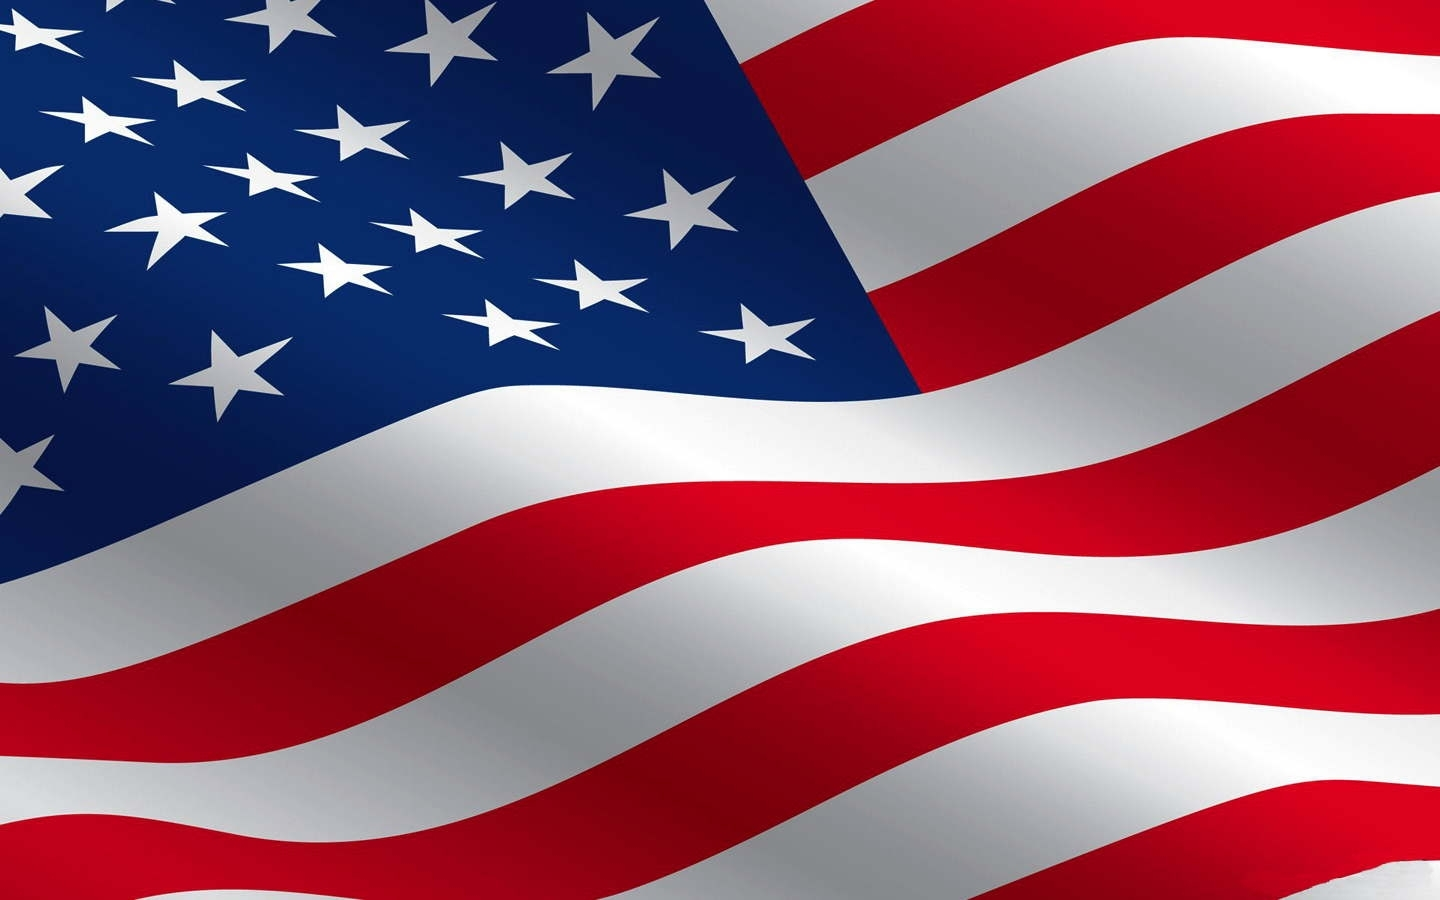 10 New American Flag Wallpapers Free FULL HD 1920×1080 For PC Background